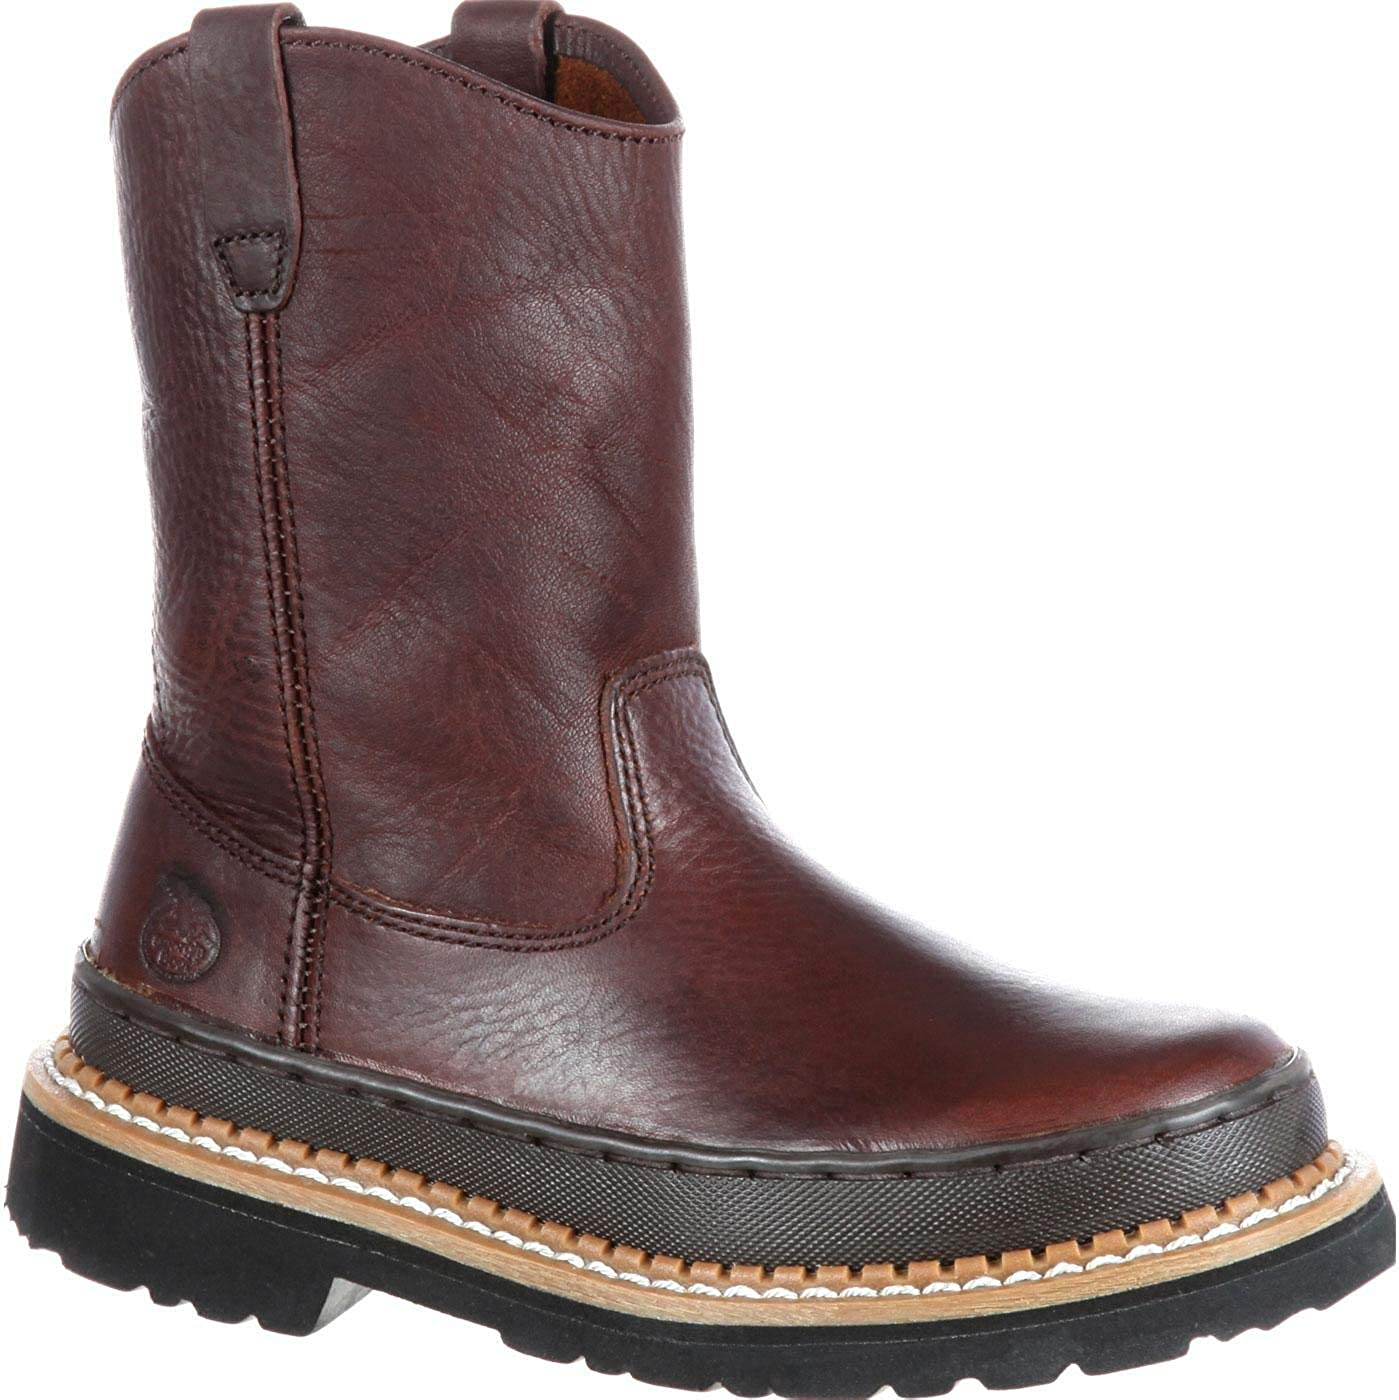 B0010XF29U Georgia Boot Kids' G204 Mid Calf Boot 71AQLHvgOjL